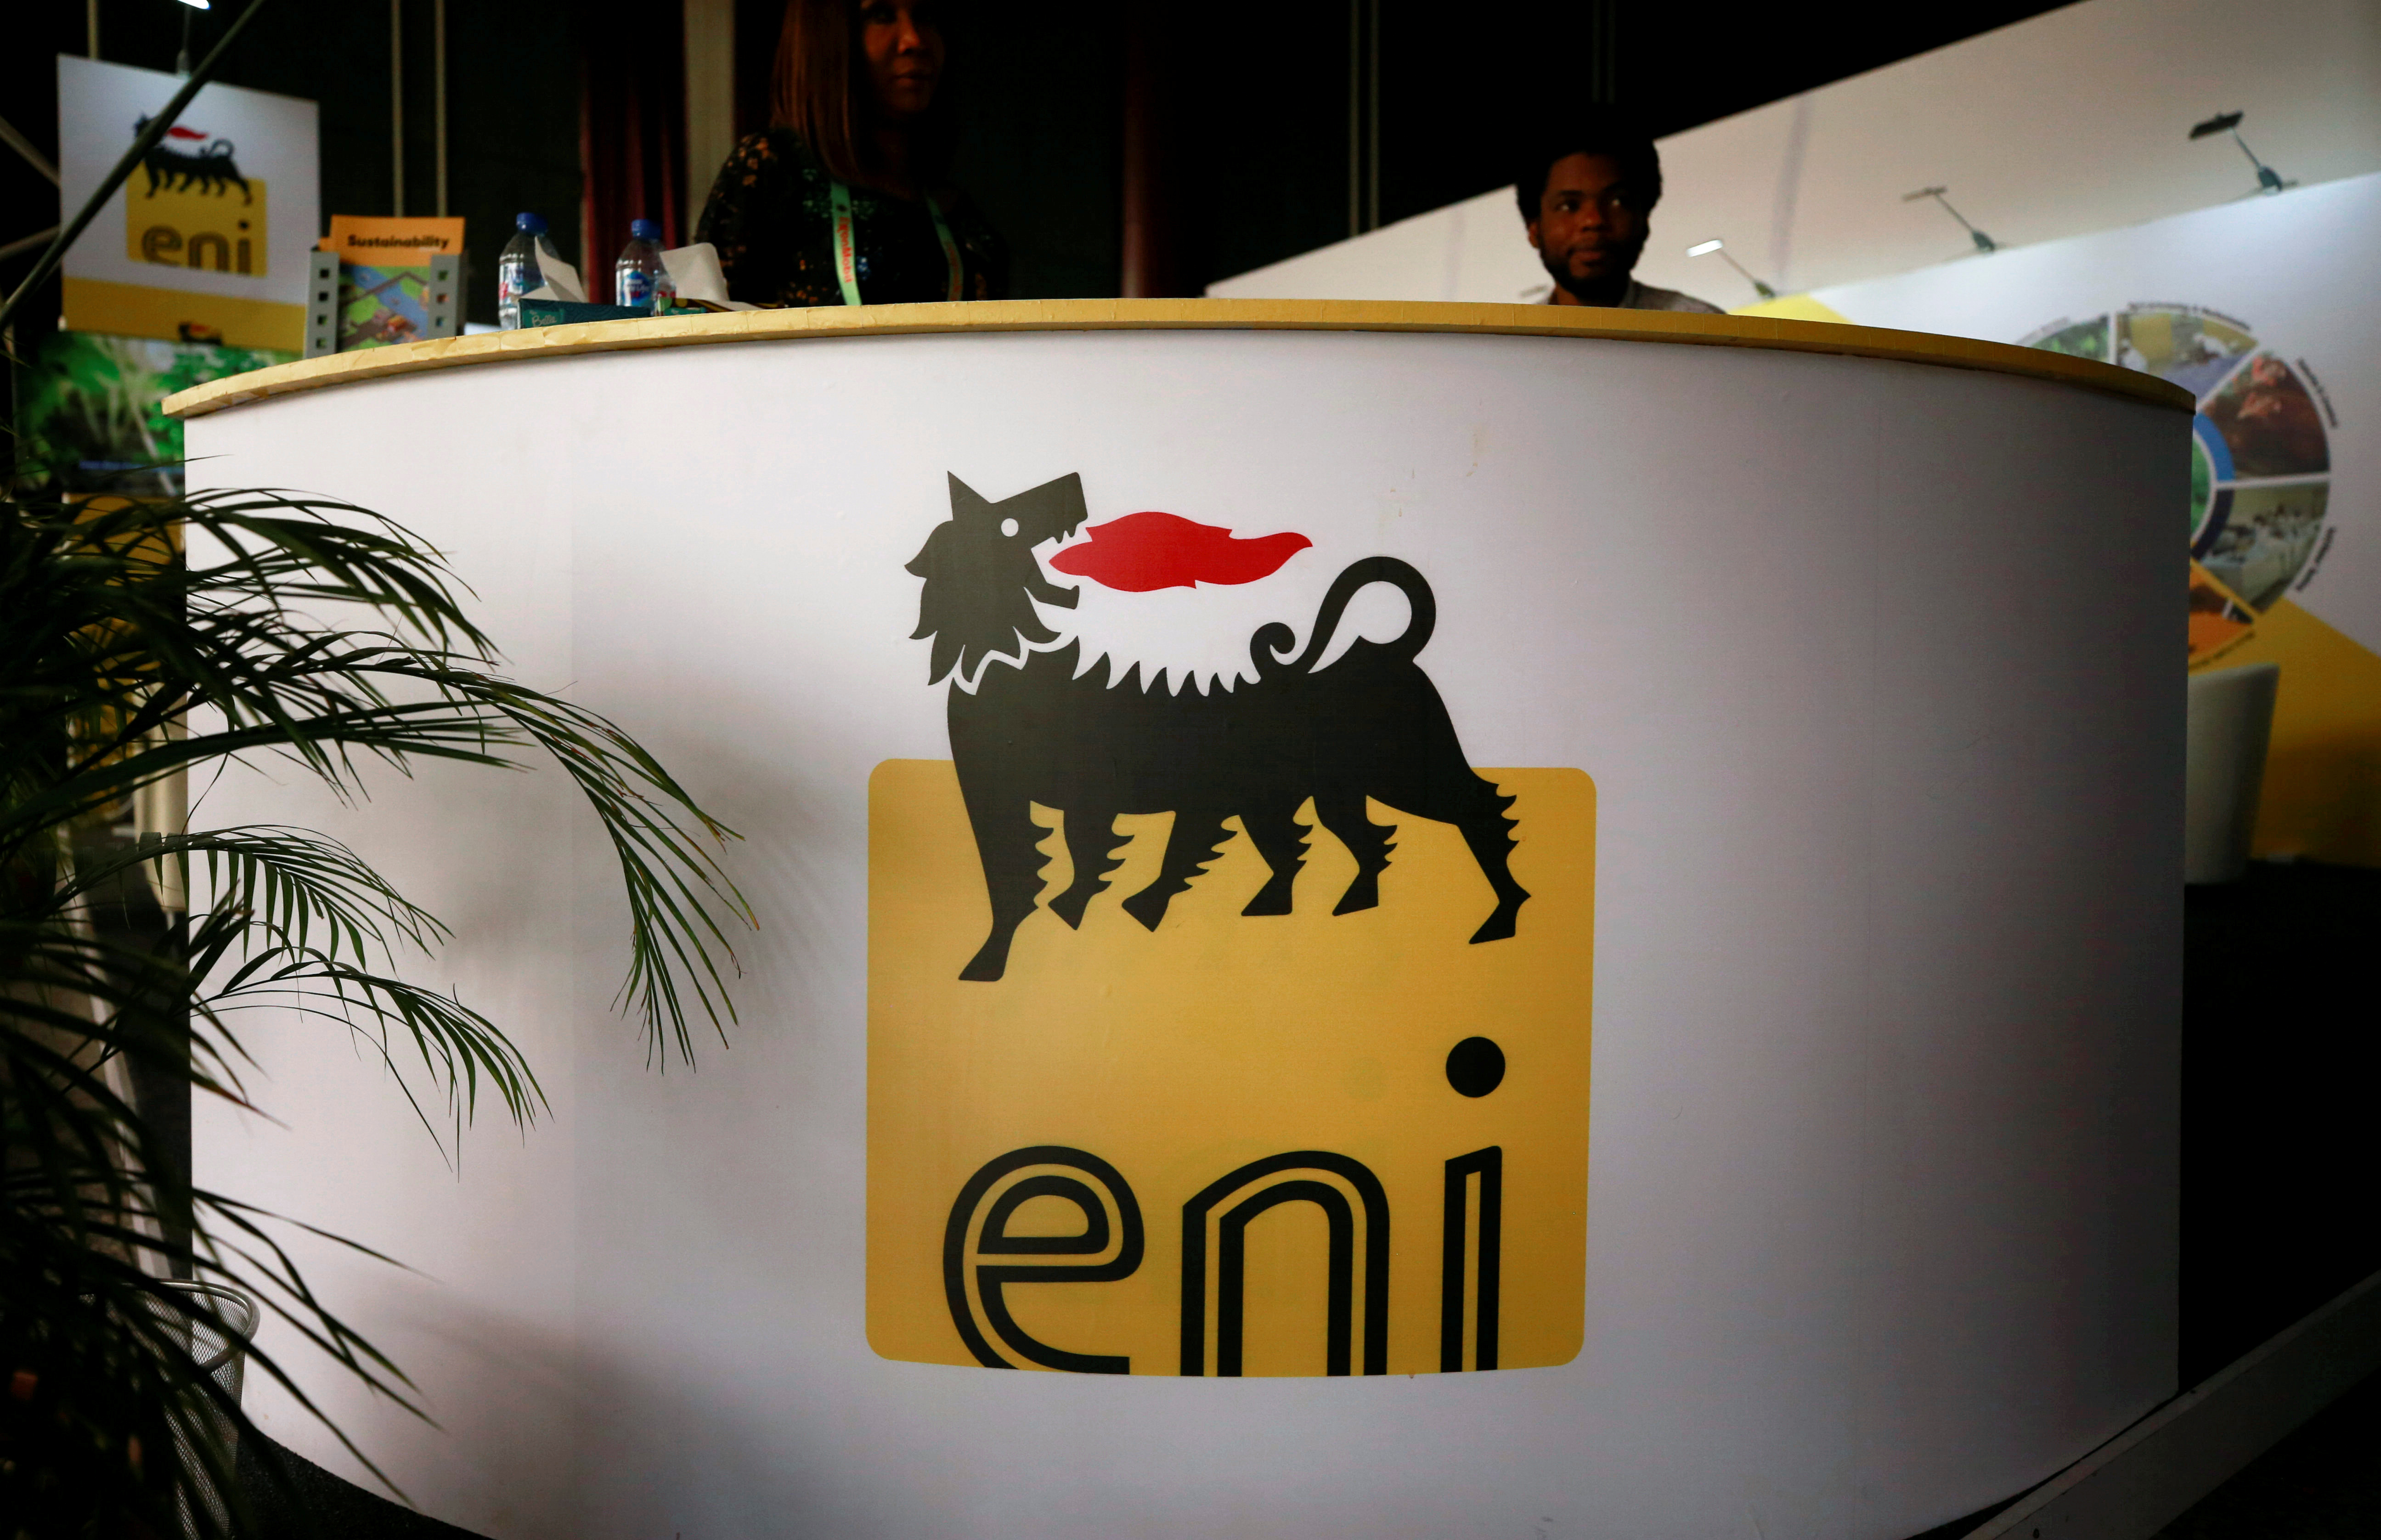 The logo of Italian energy company Eni is seen on a booth stand during the Nigeria International Petroleum Summit in Abuja, Nigeria February 11, 2020. Picture taken February 11, 2020. REUTERS/Afolabi Sotunde